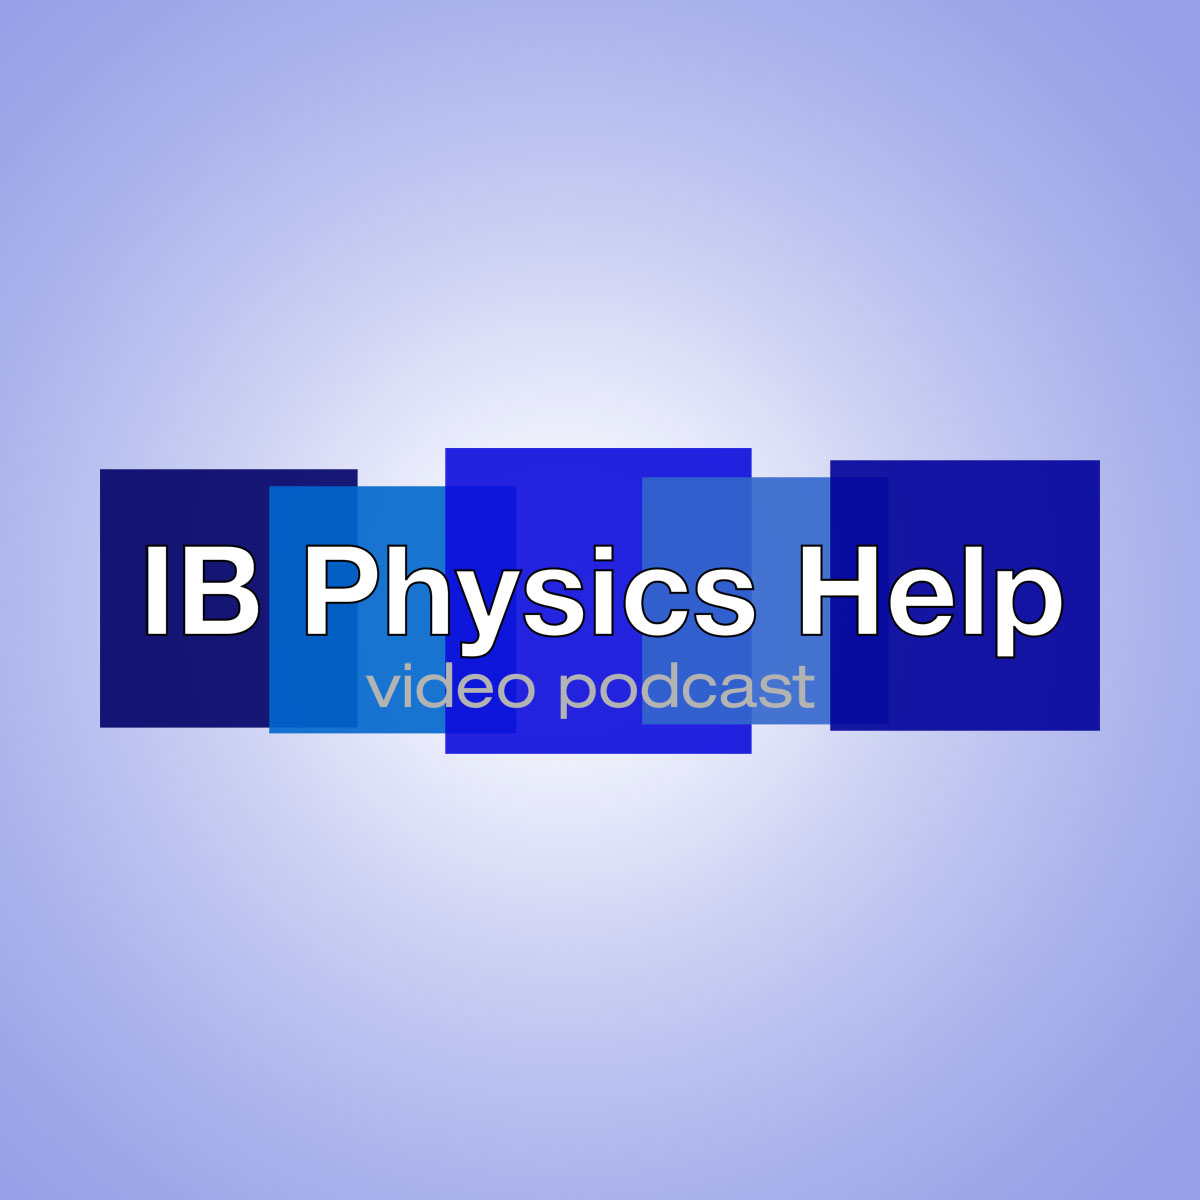 IB Physics Help Video Podcast